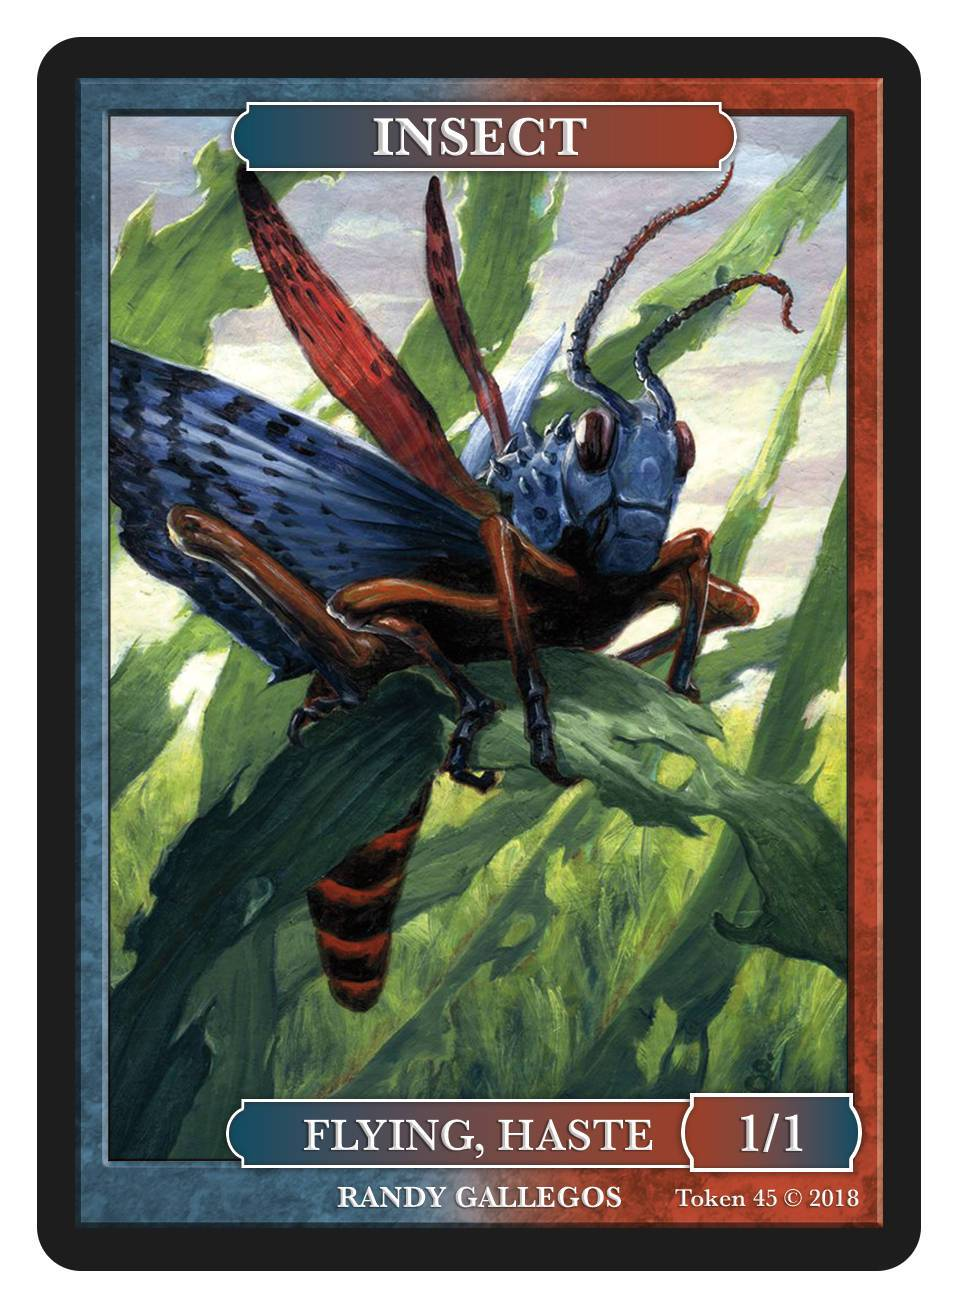 Insect Token (1/1 - Flying, Haste) by Randy Gallegos - Token - Original Magic Art - Accessories for Magic the Gathering and other card games